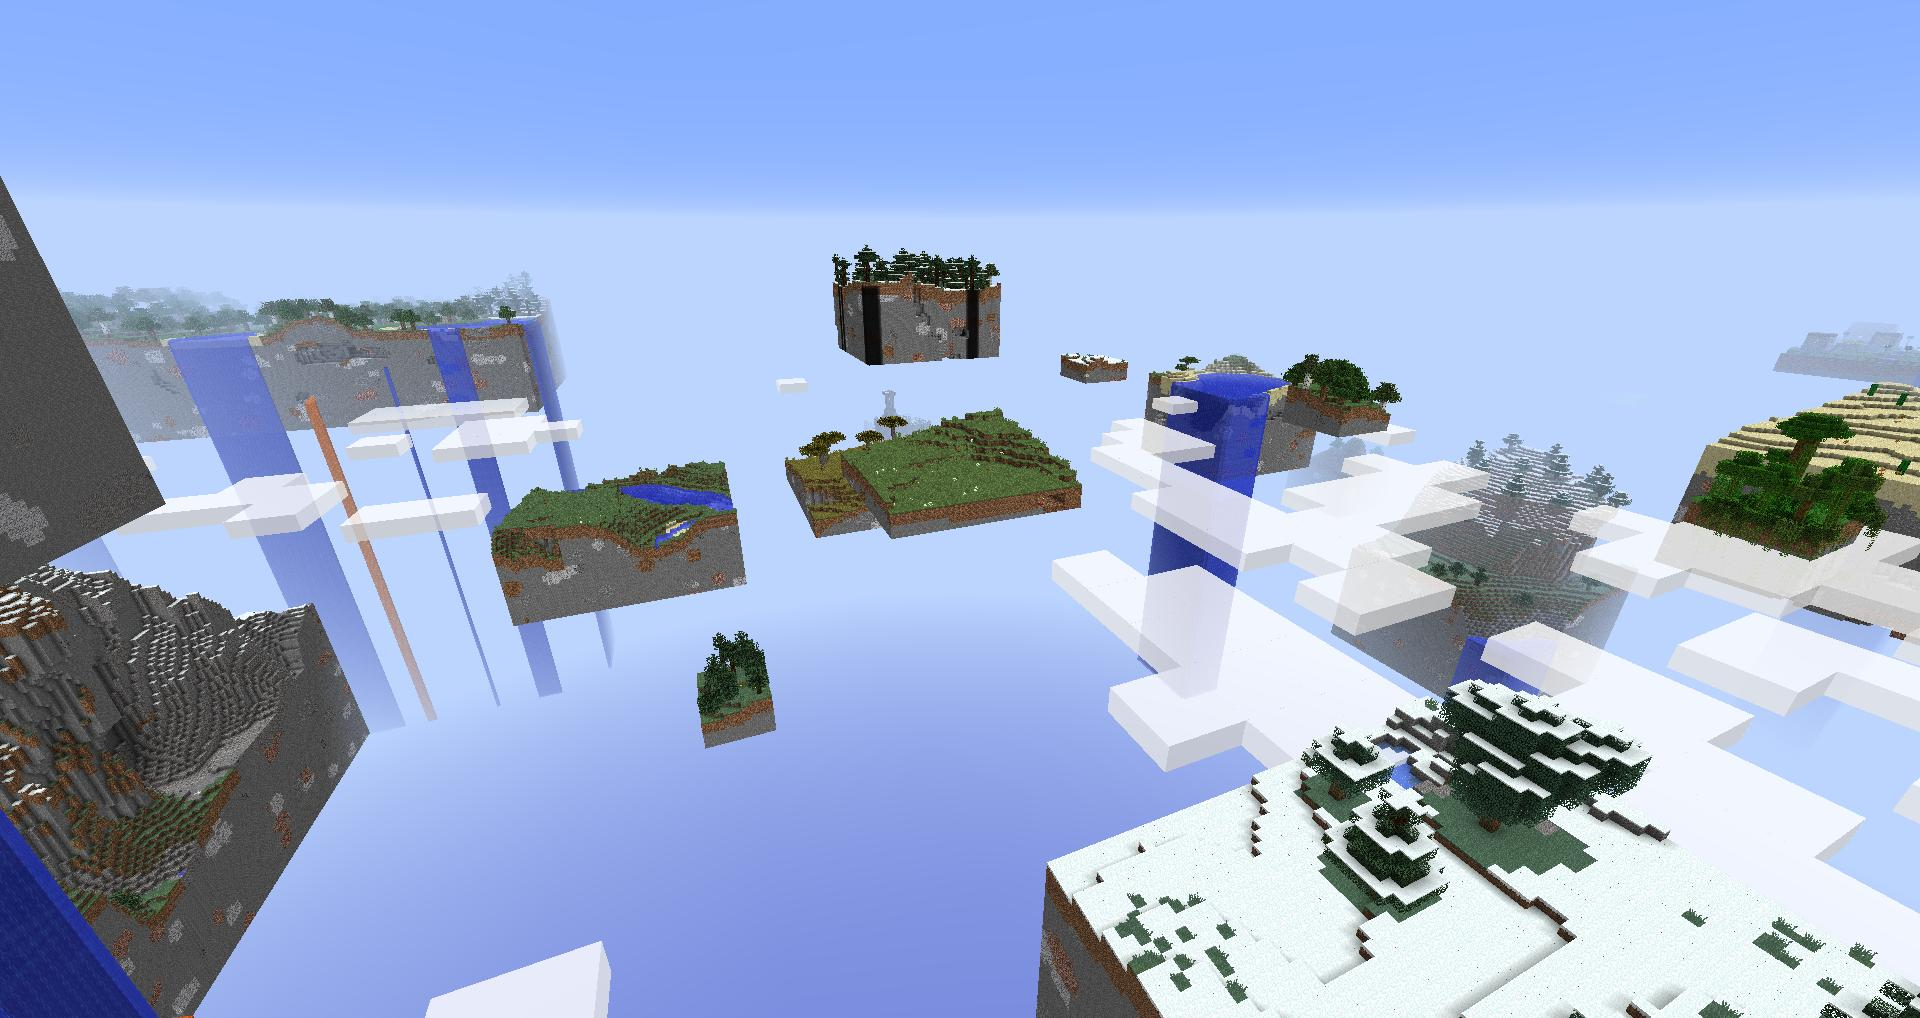 minecraft-map-survie-chink-biomeR-vue-ensemble